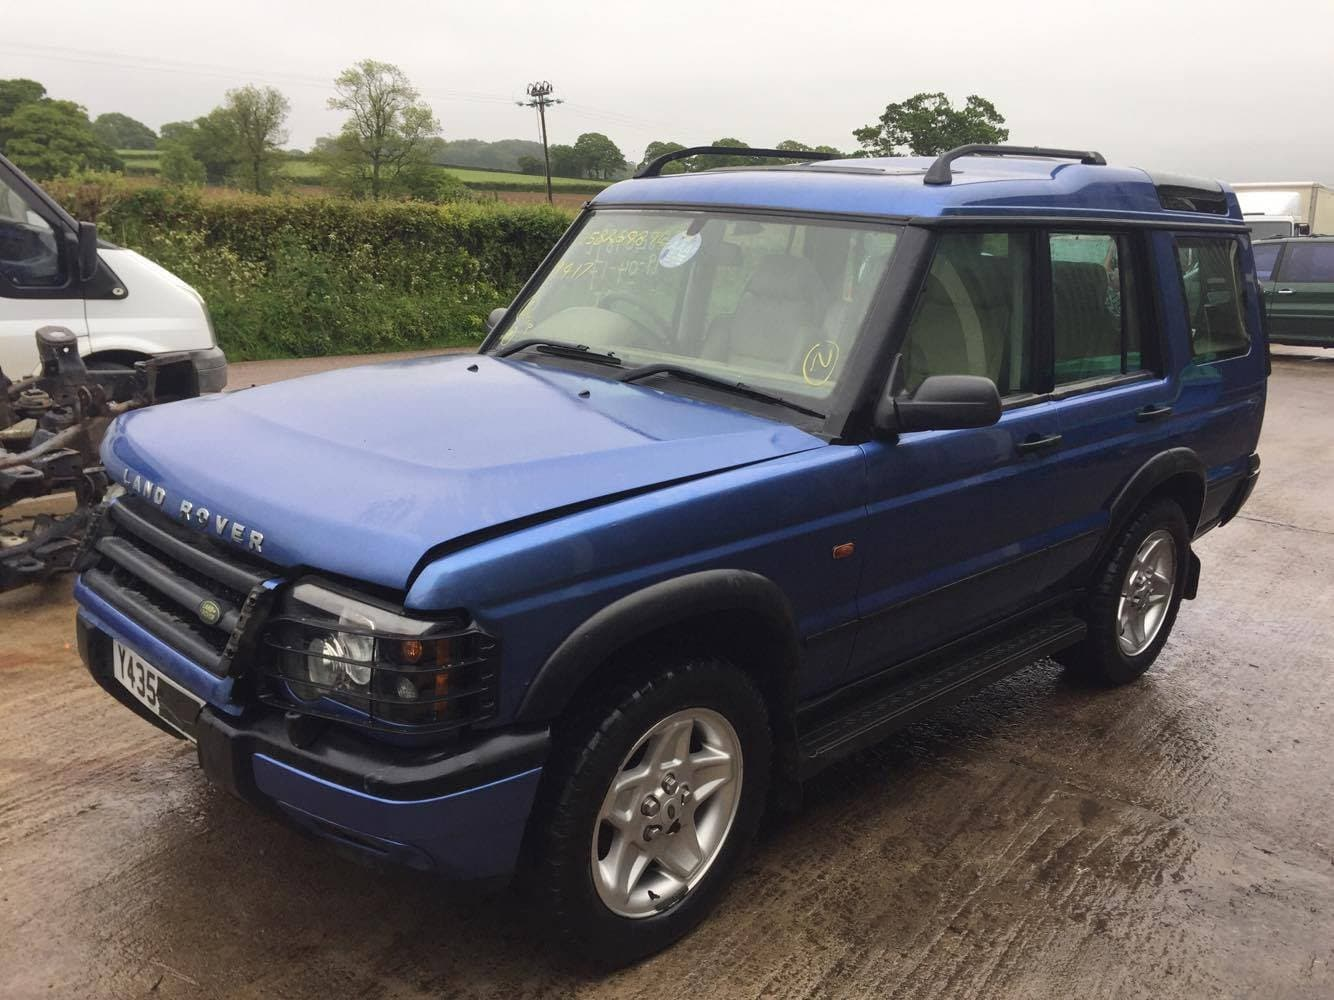 currently breaking 2001 land rover discovery 2 2 5l td5 es rh gentlemenofsalvage co uk Land Rover Discovery Sport 2001 land rover discovery td5 workshop manual free download